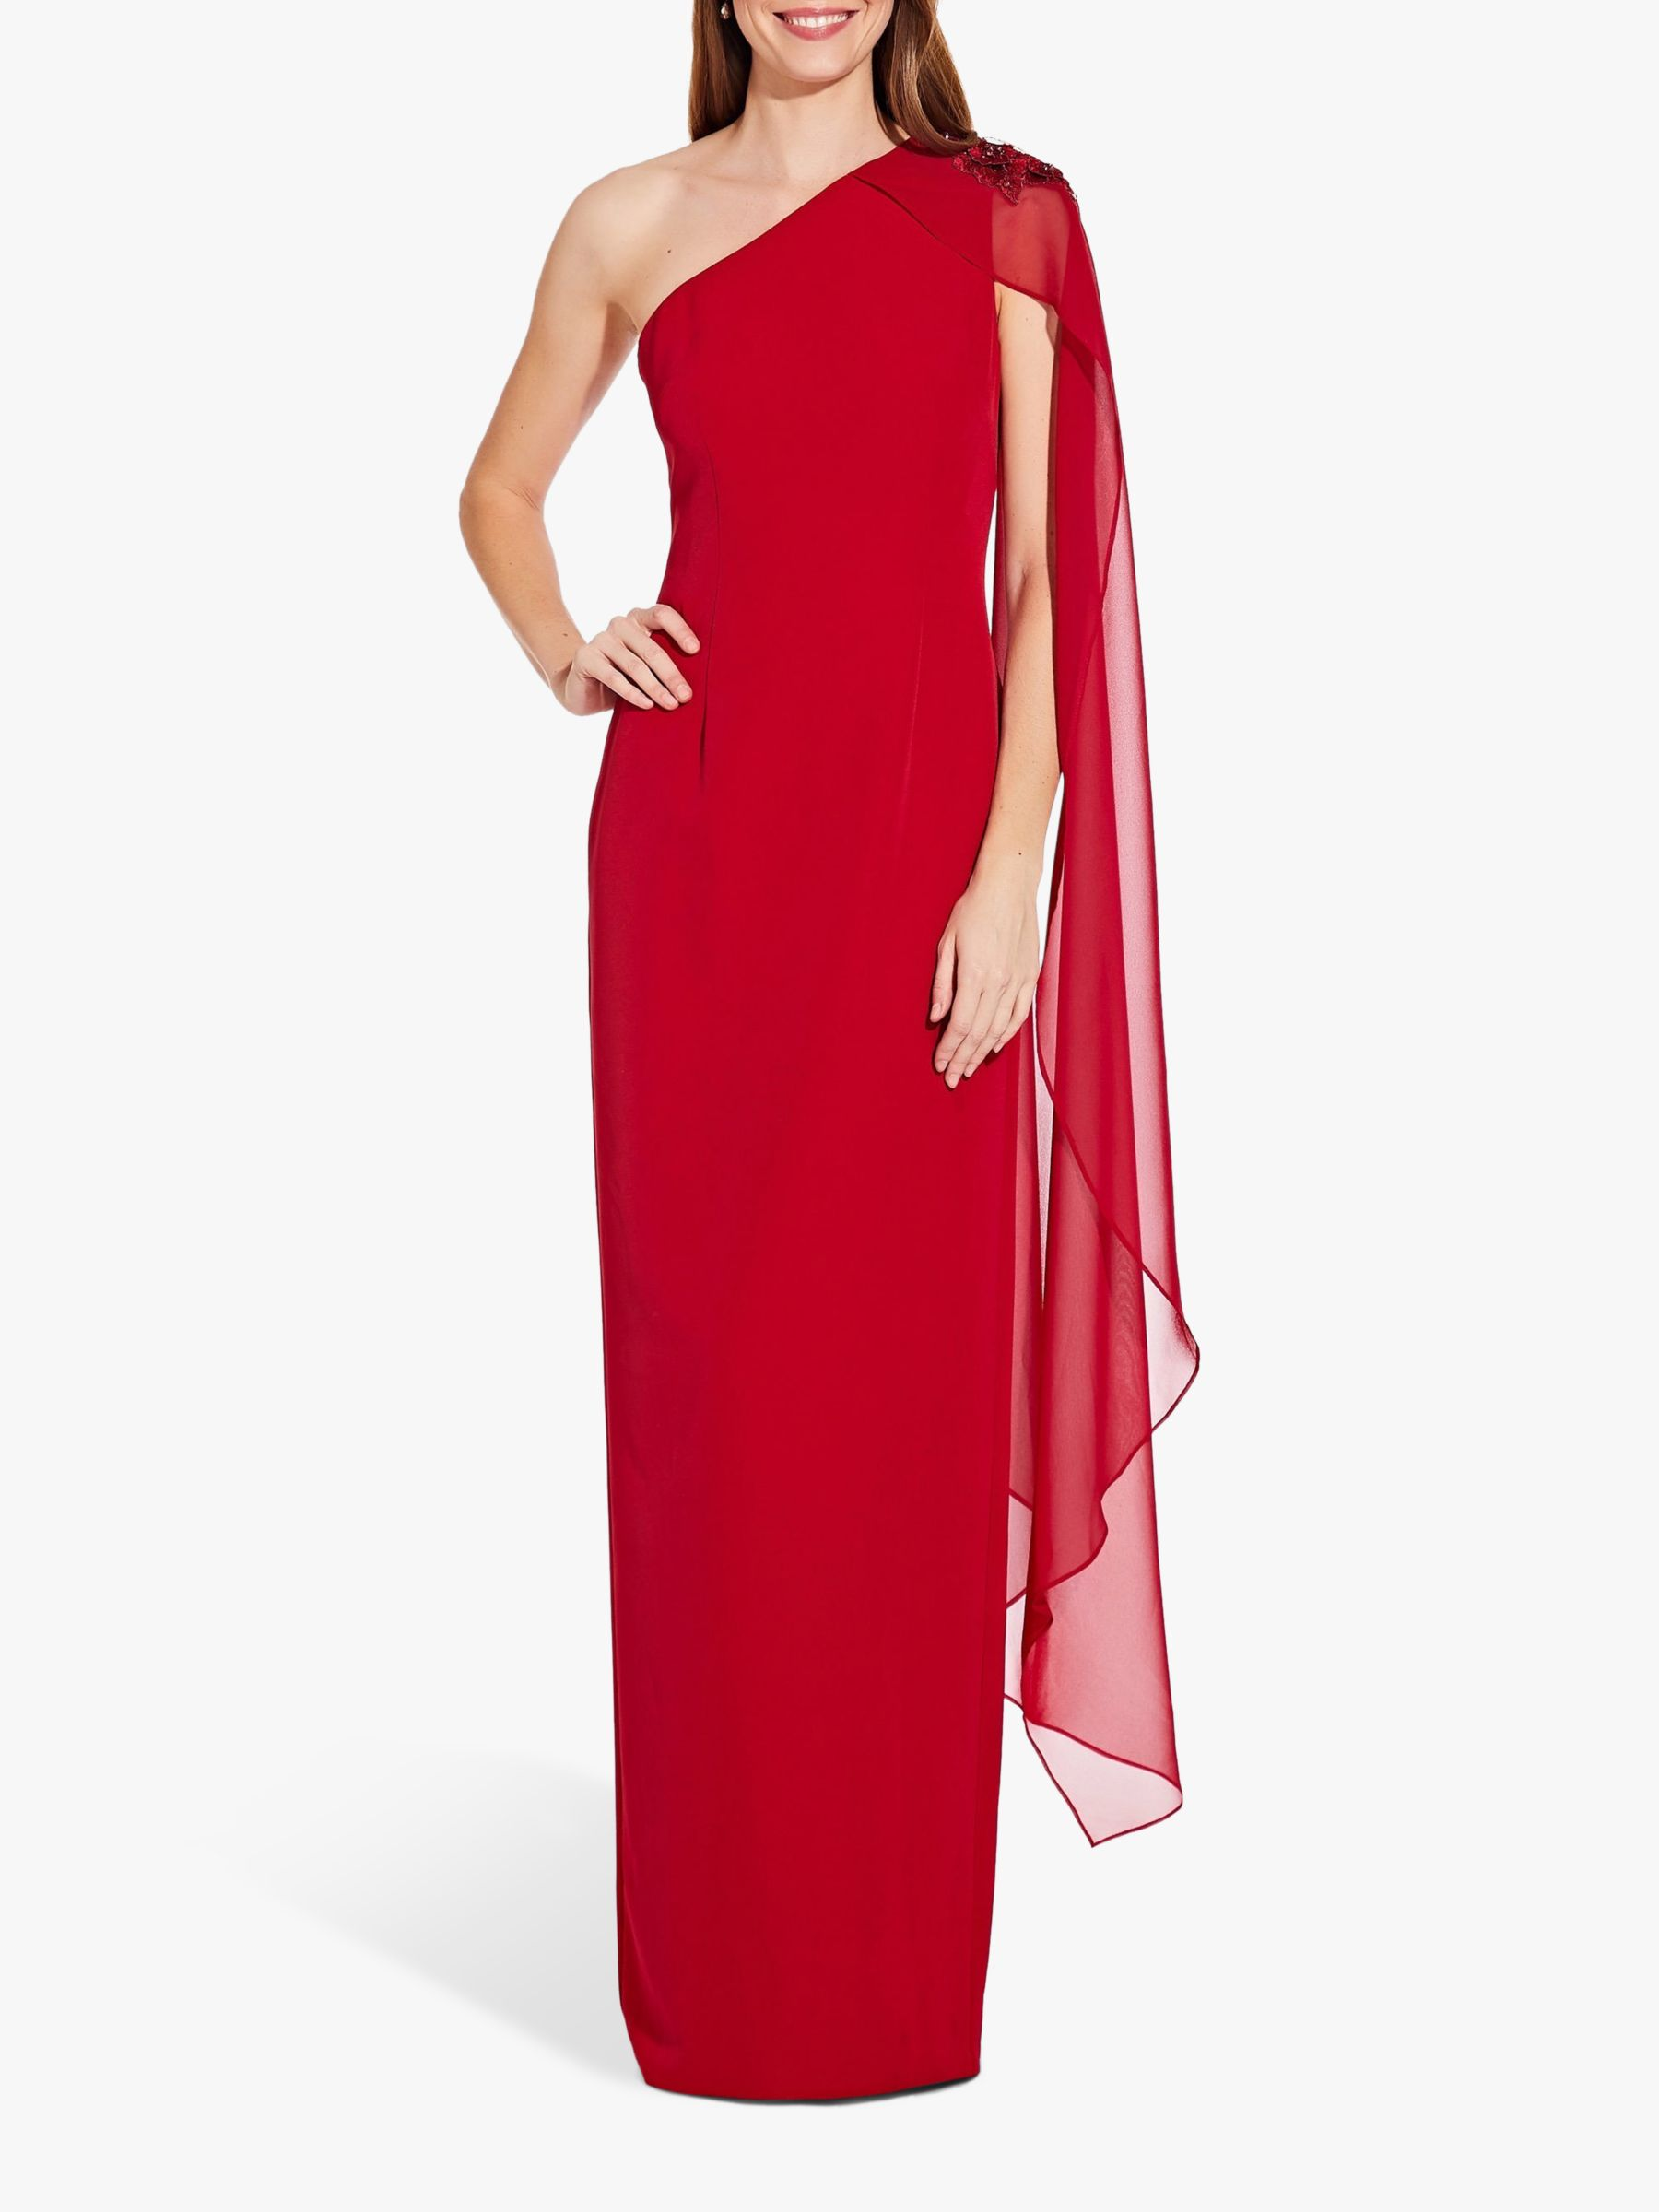 Adrianna Papell Adrianna Papell One Shoulder Cape Sleeve Gown, Cardinal